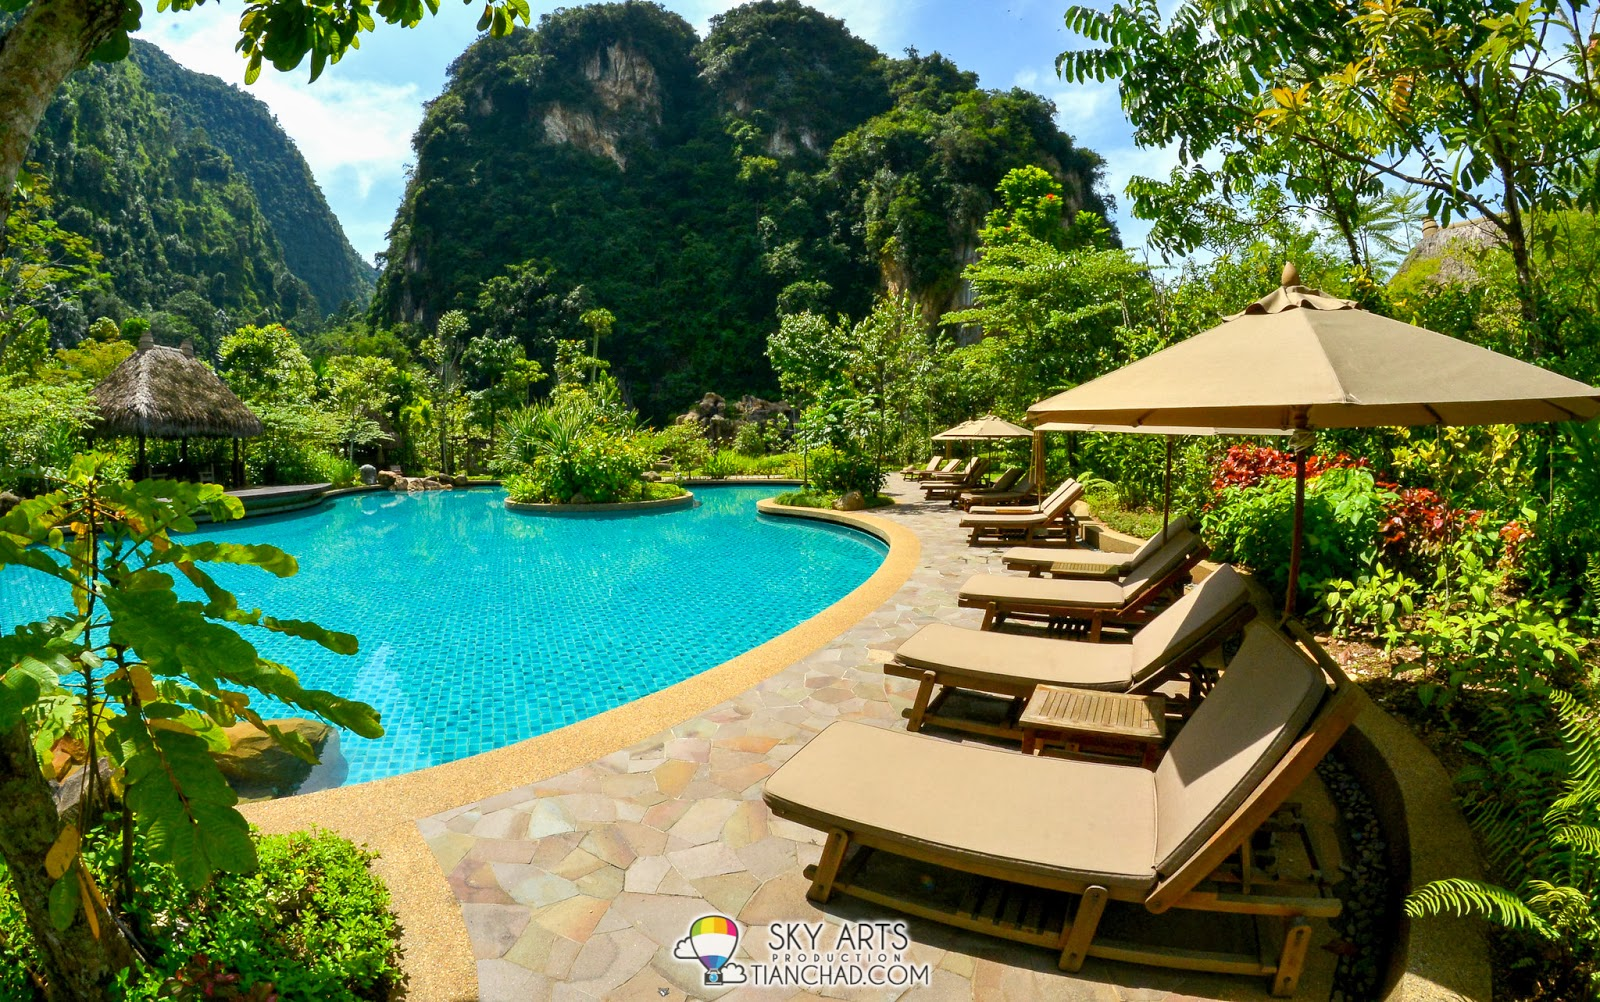 The+Banjaran+Hotsprings+Retreat+Ipoh+Valentines+Day+Travel+Review-137.jpg